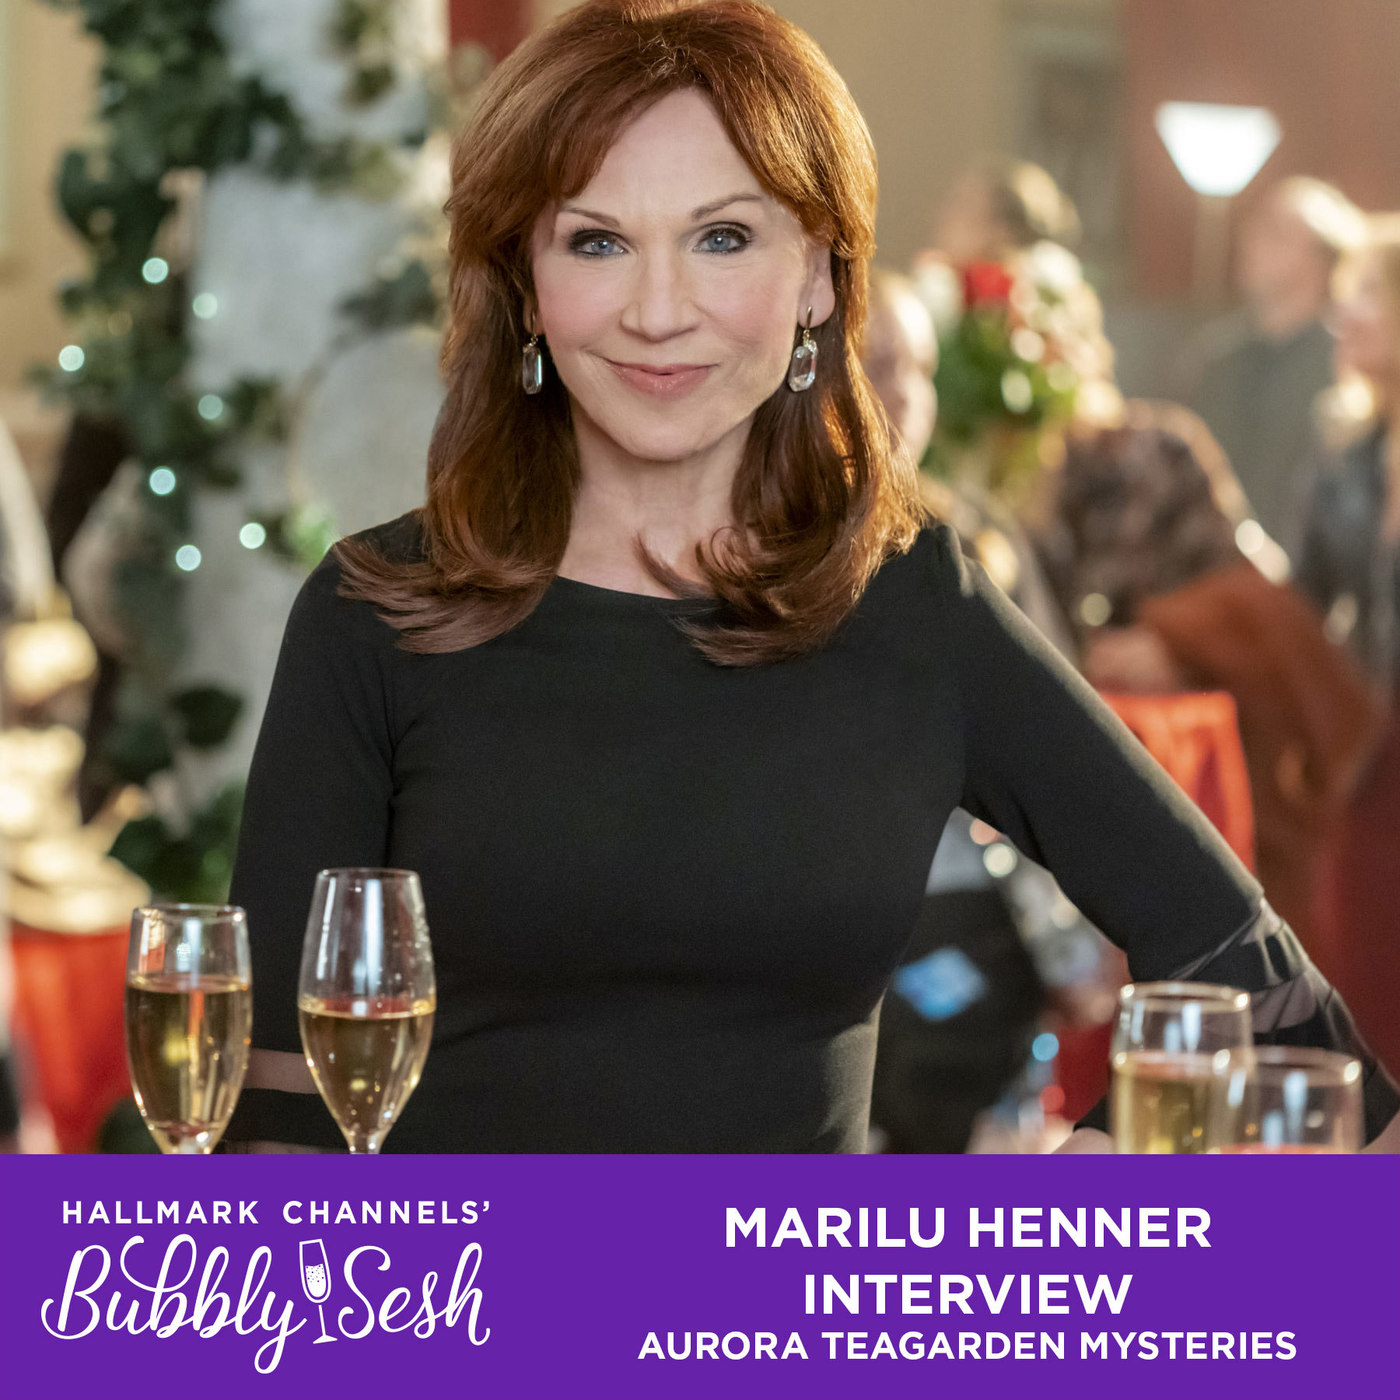 Marilu Henner Interview, Aurora Teagarden Mysteries: Heist and Seek